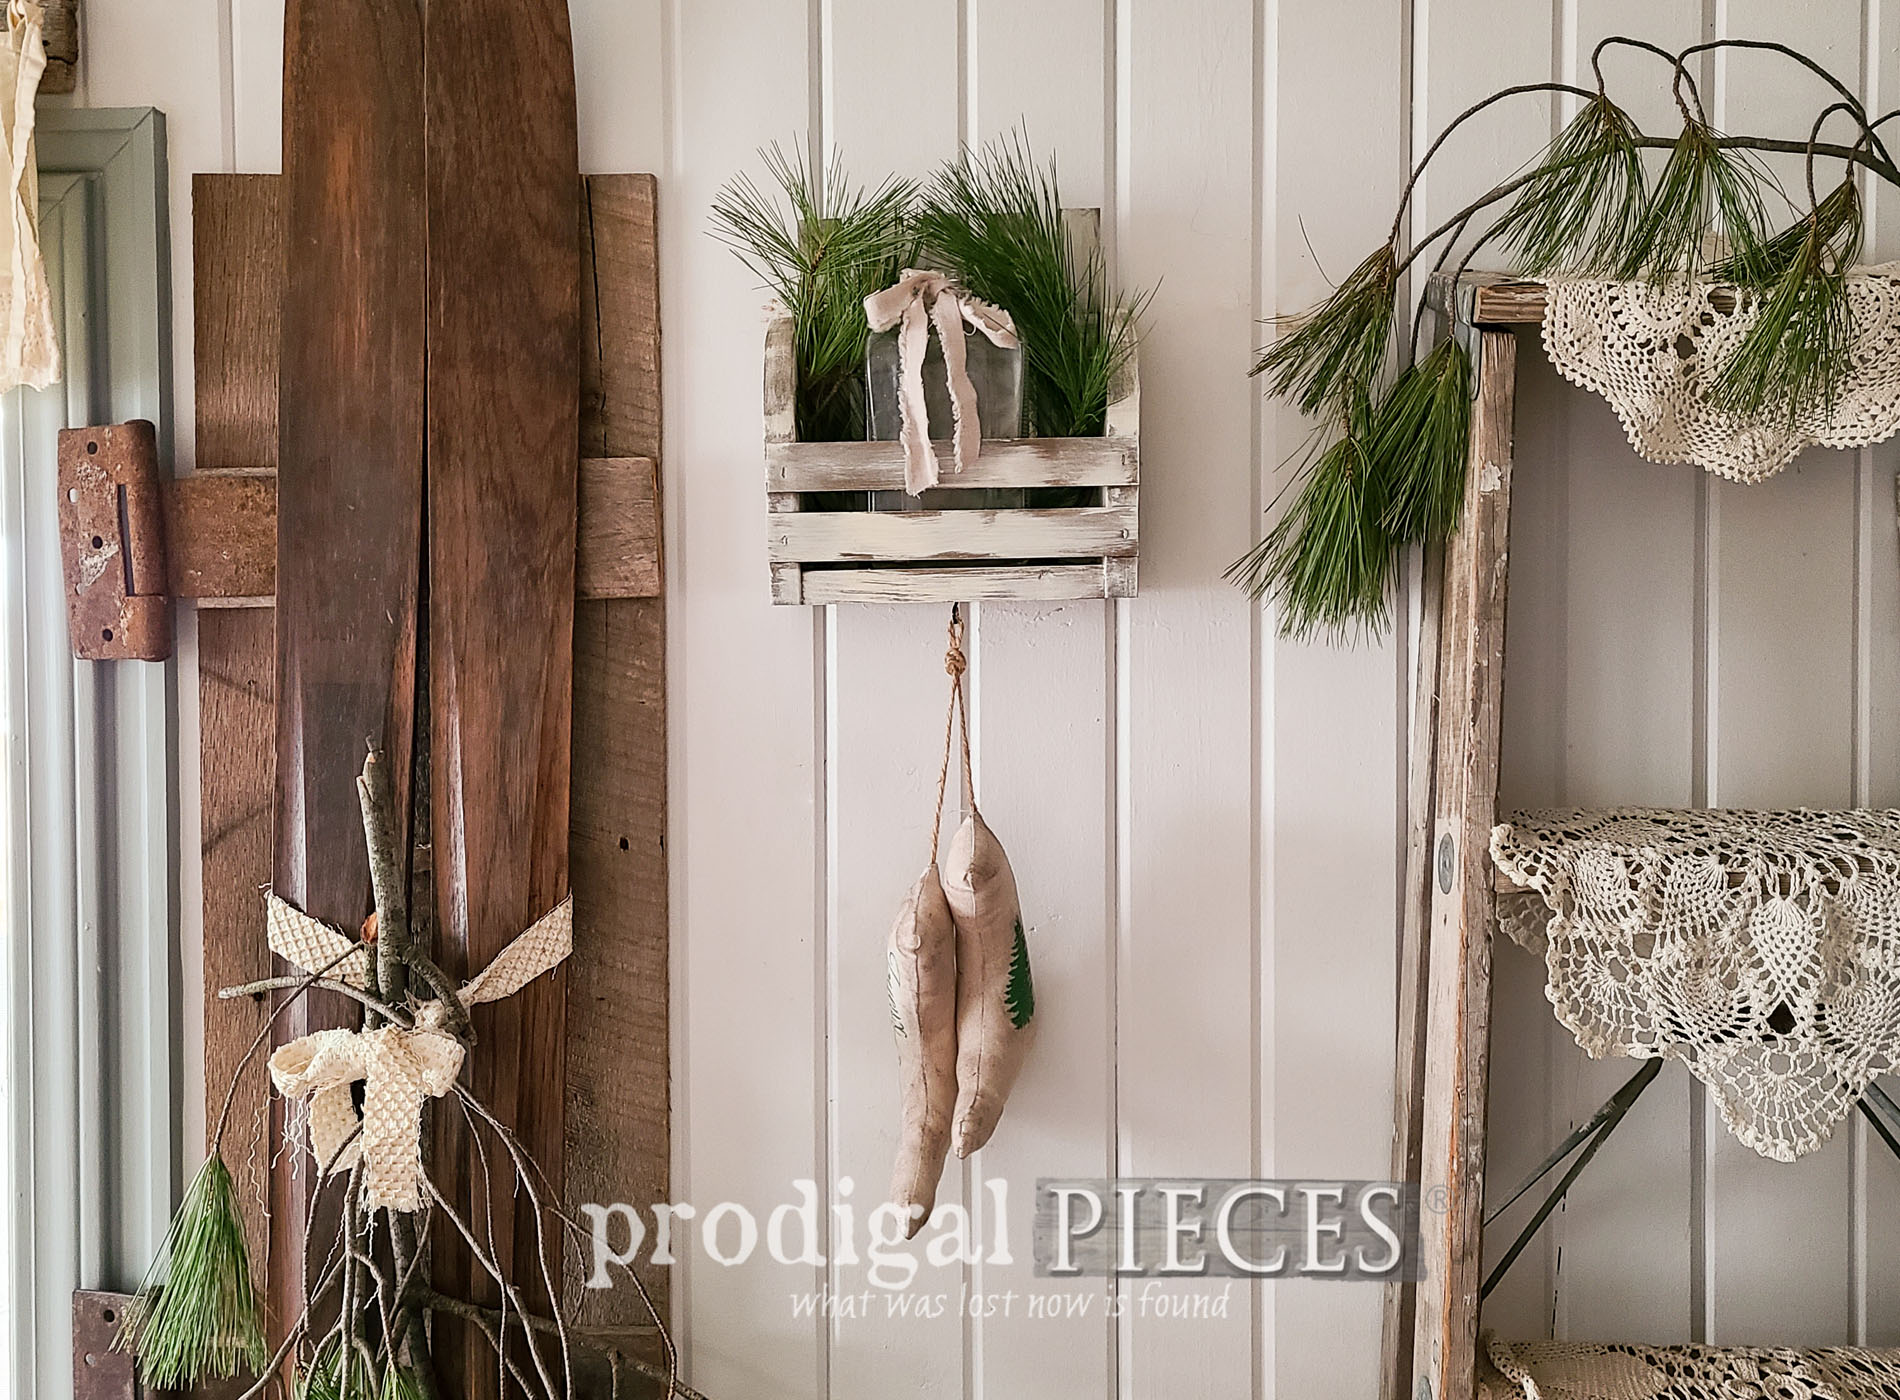 Featured DIY Wall Pocket from Upcycled Paint Stir Sticks by Larissa of Prodigal Pieces | prodigalpieces.com #prodigalpieces #farmhouse #christmas #diy #home #homedecor